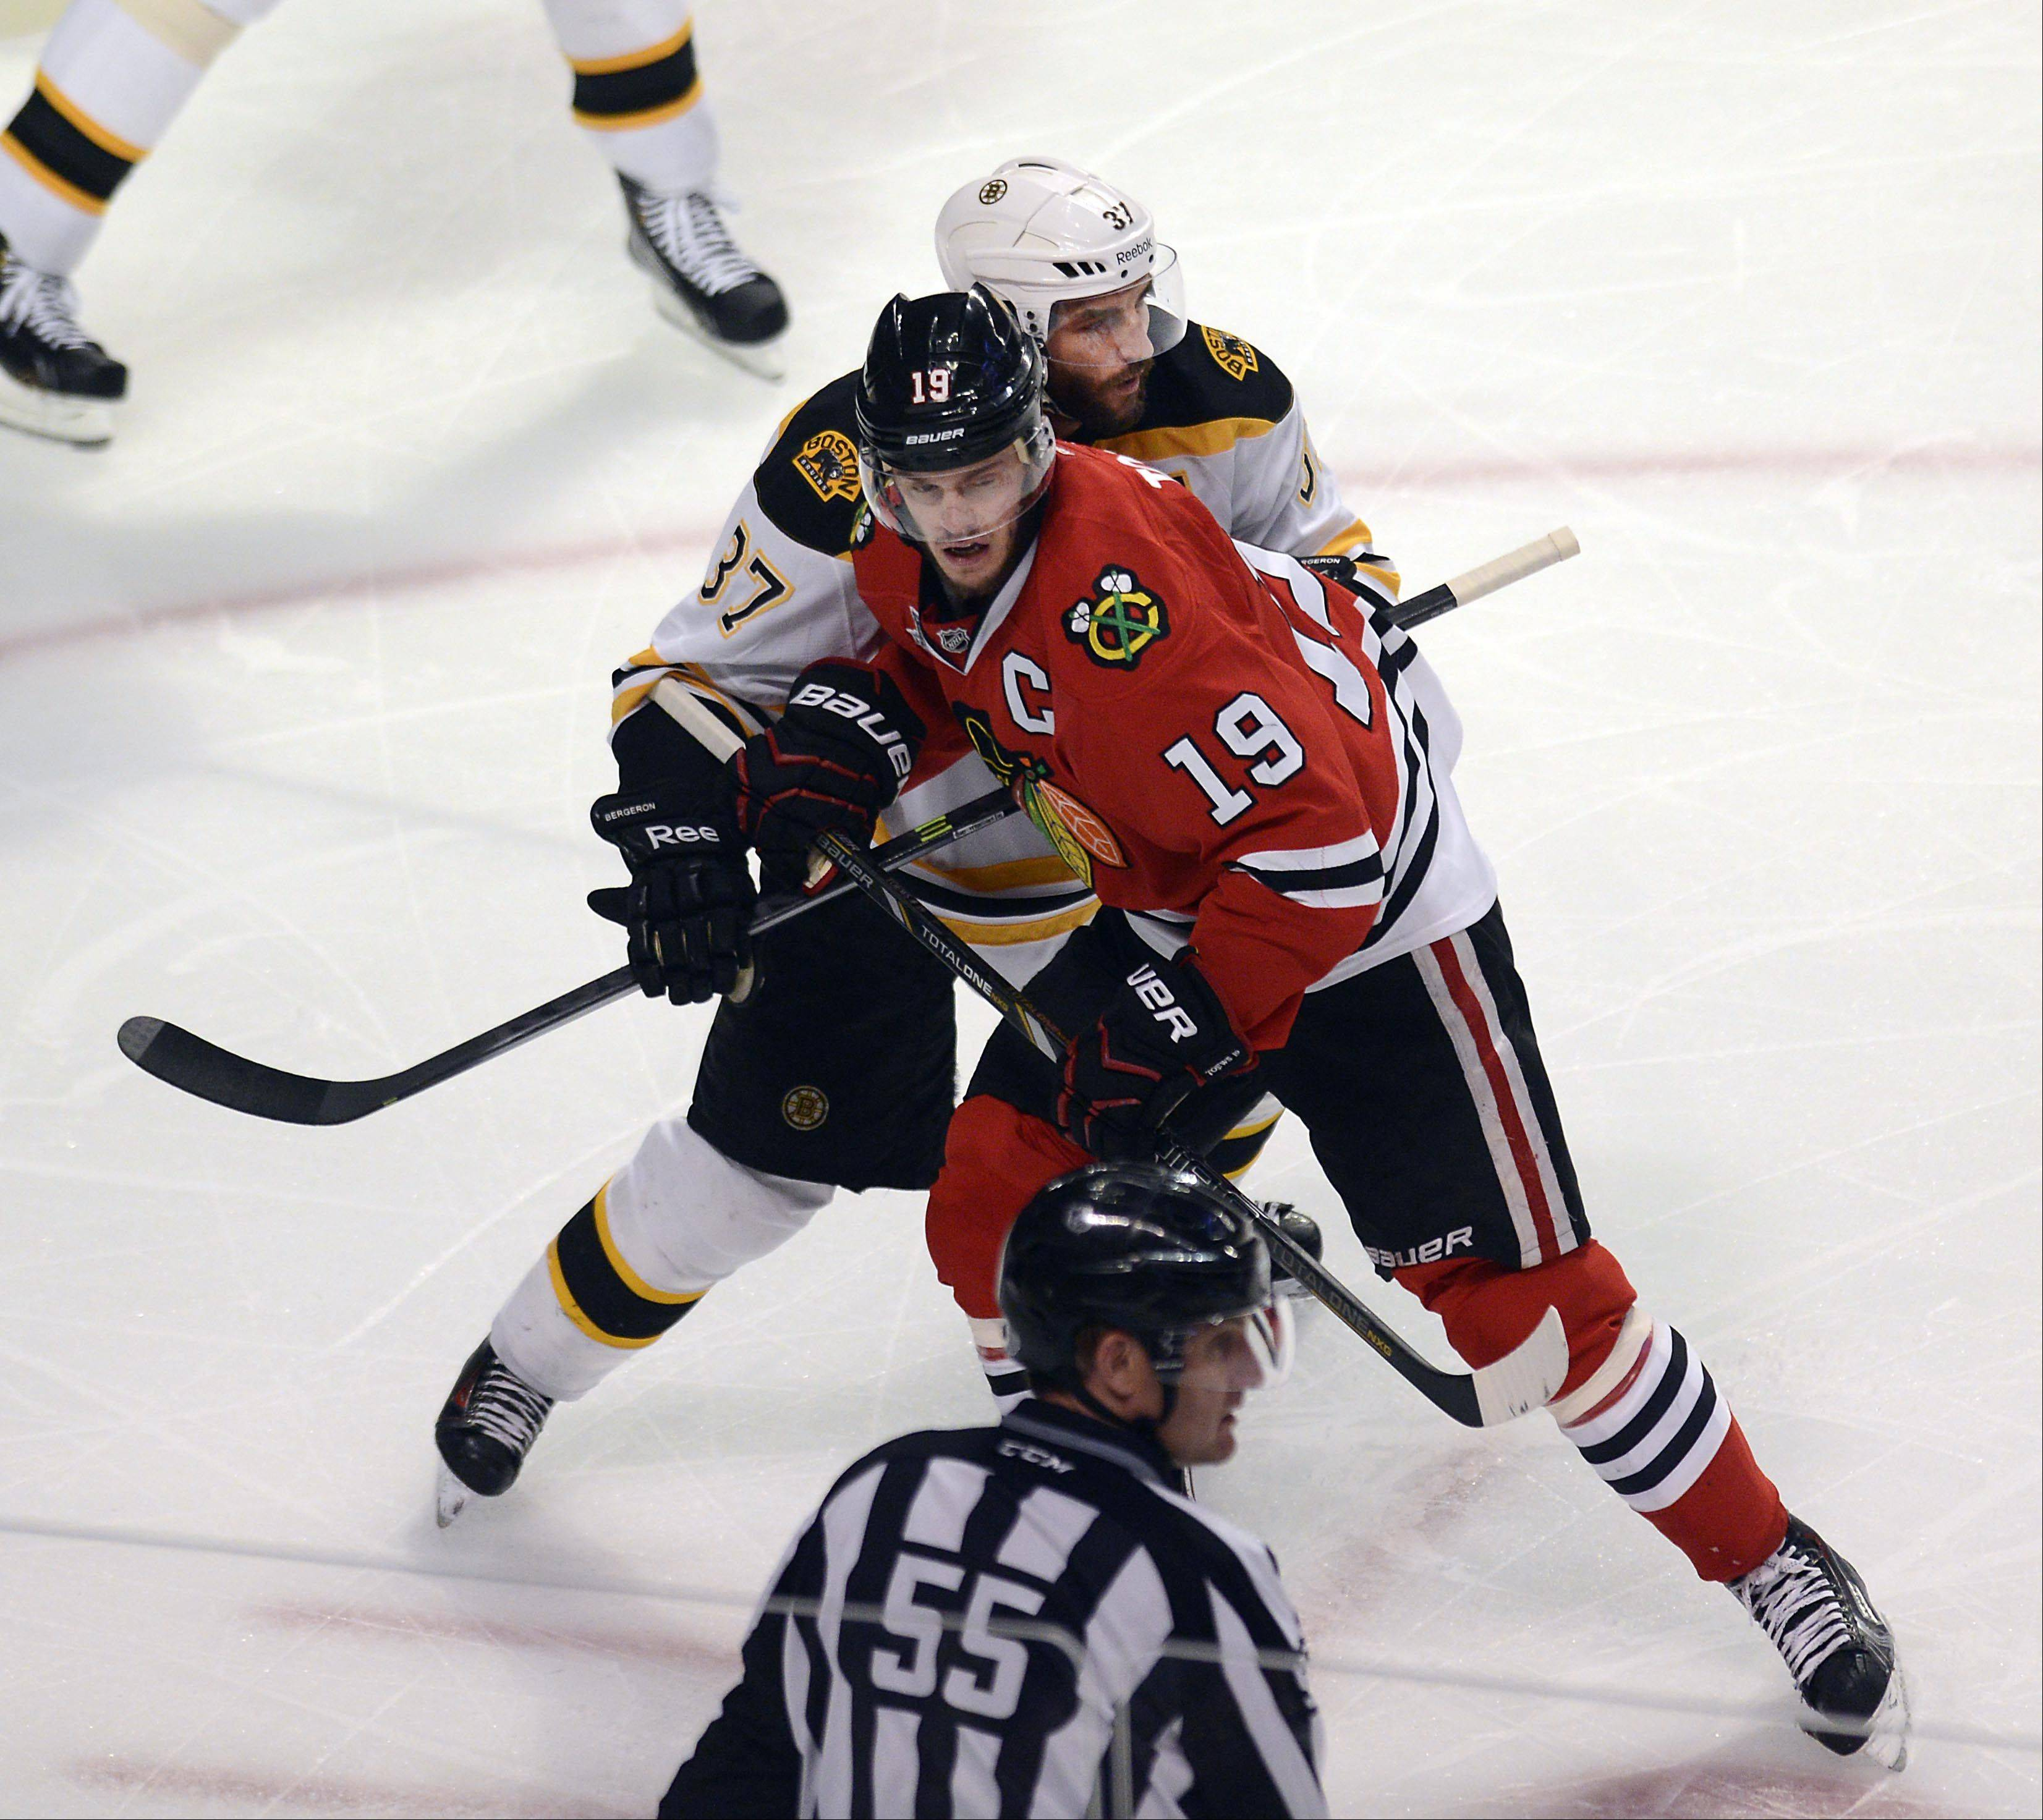 Hit on Toews won't draw any NHL disciplinary action